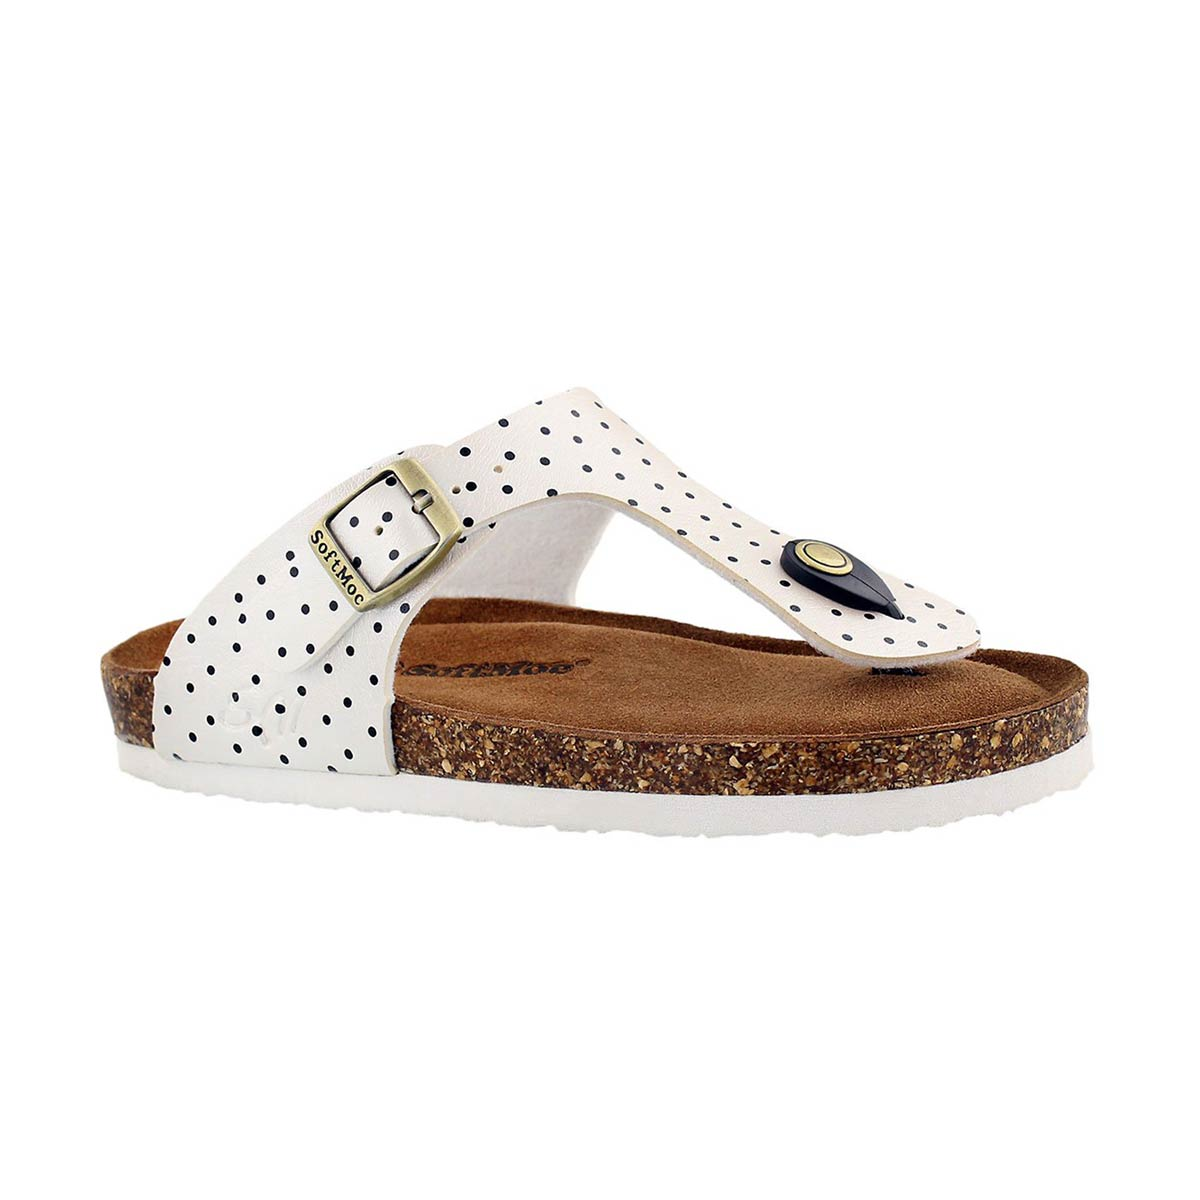 Girls' ALISON 5 white/black dot sandals